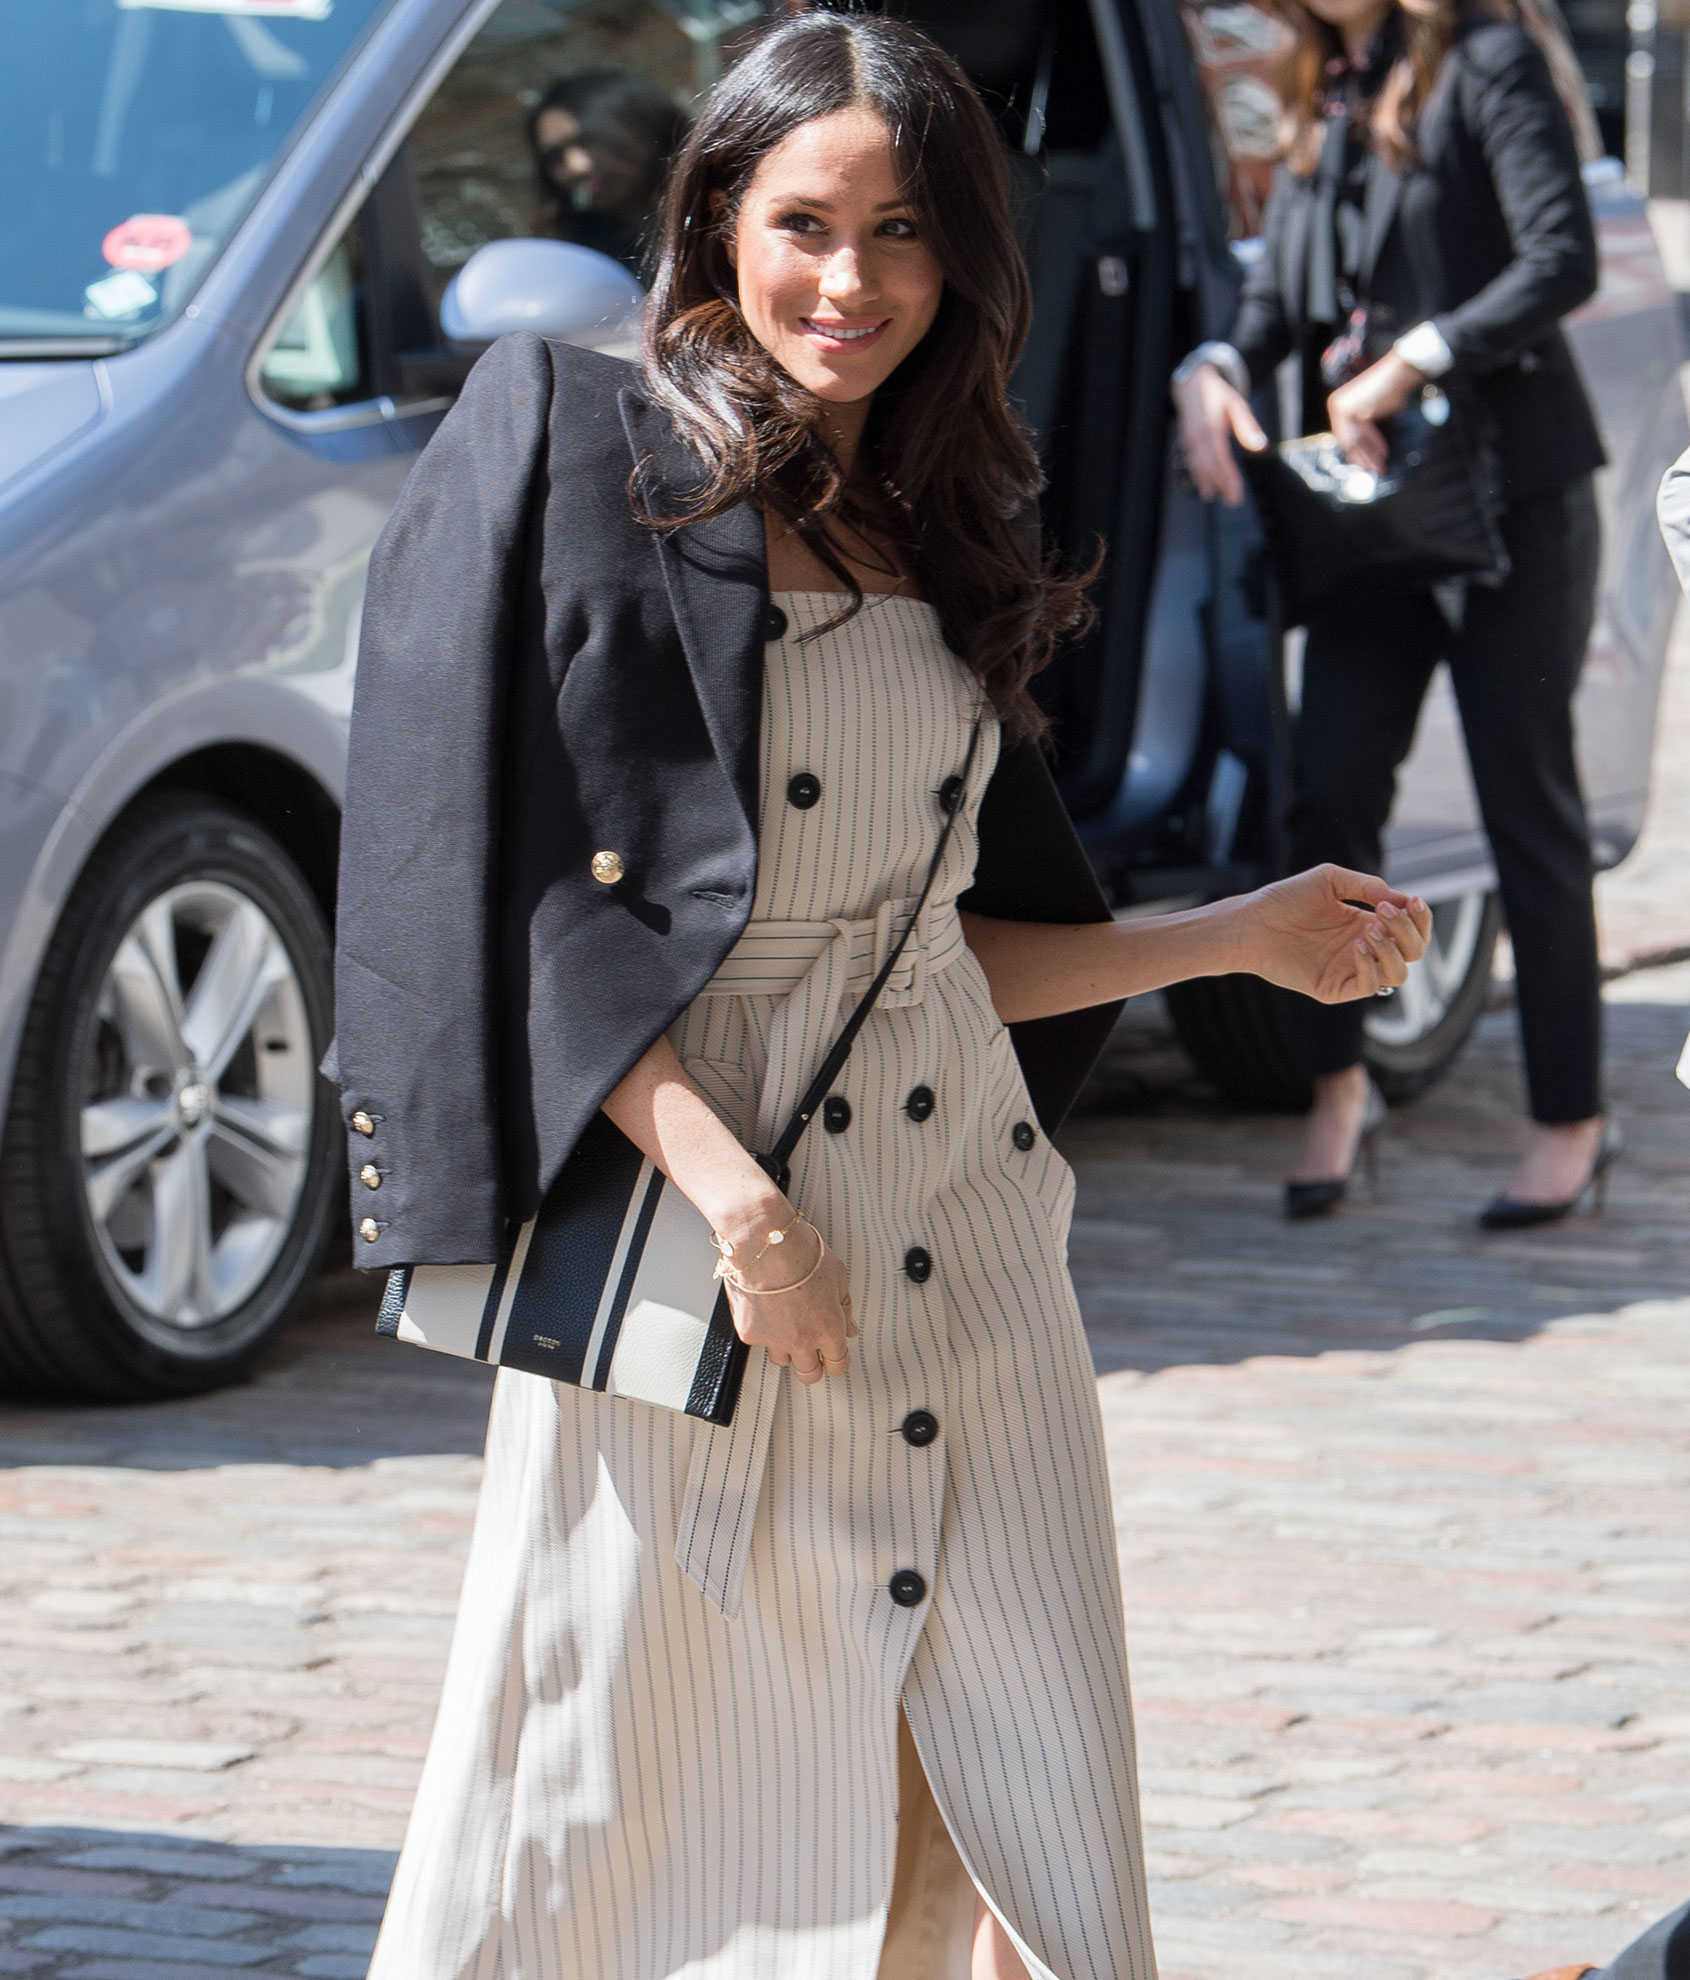 Meghan Markle wearing Australian fashion brands